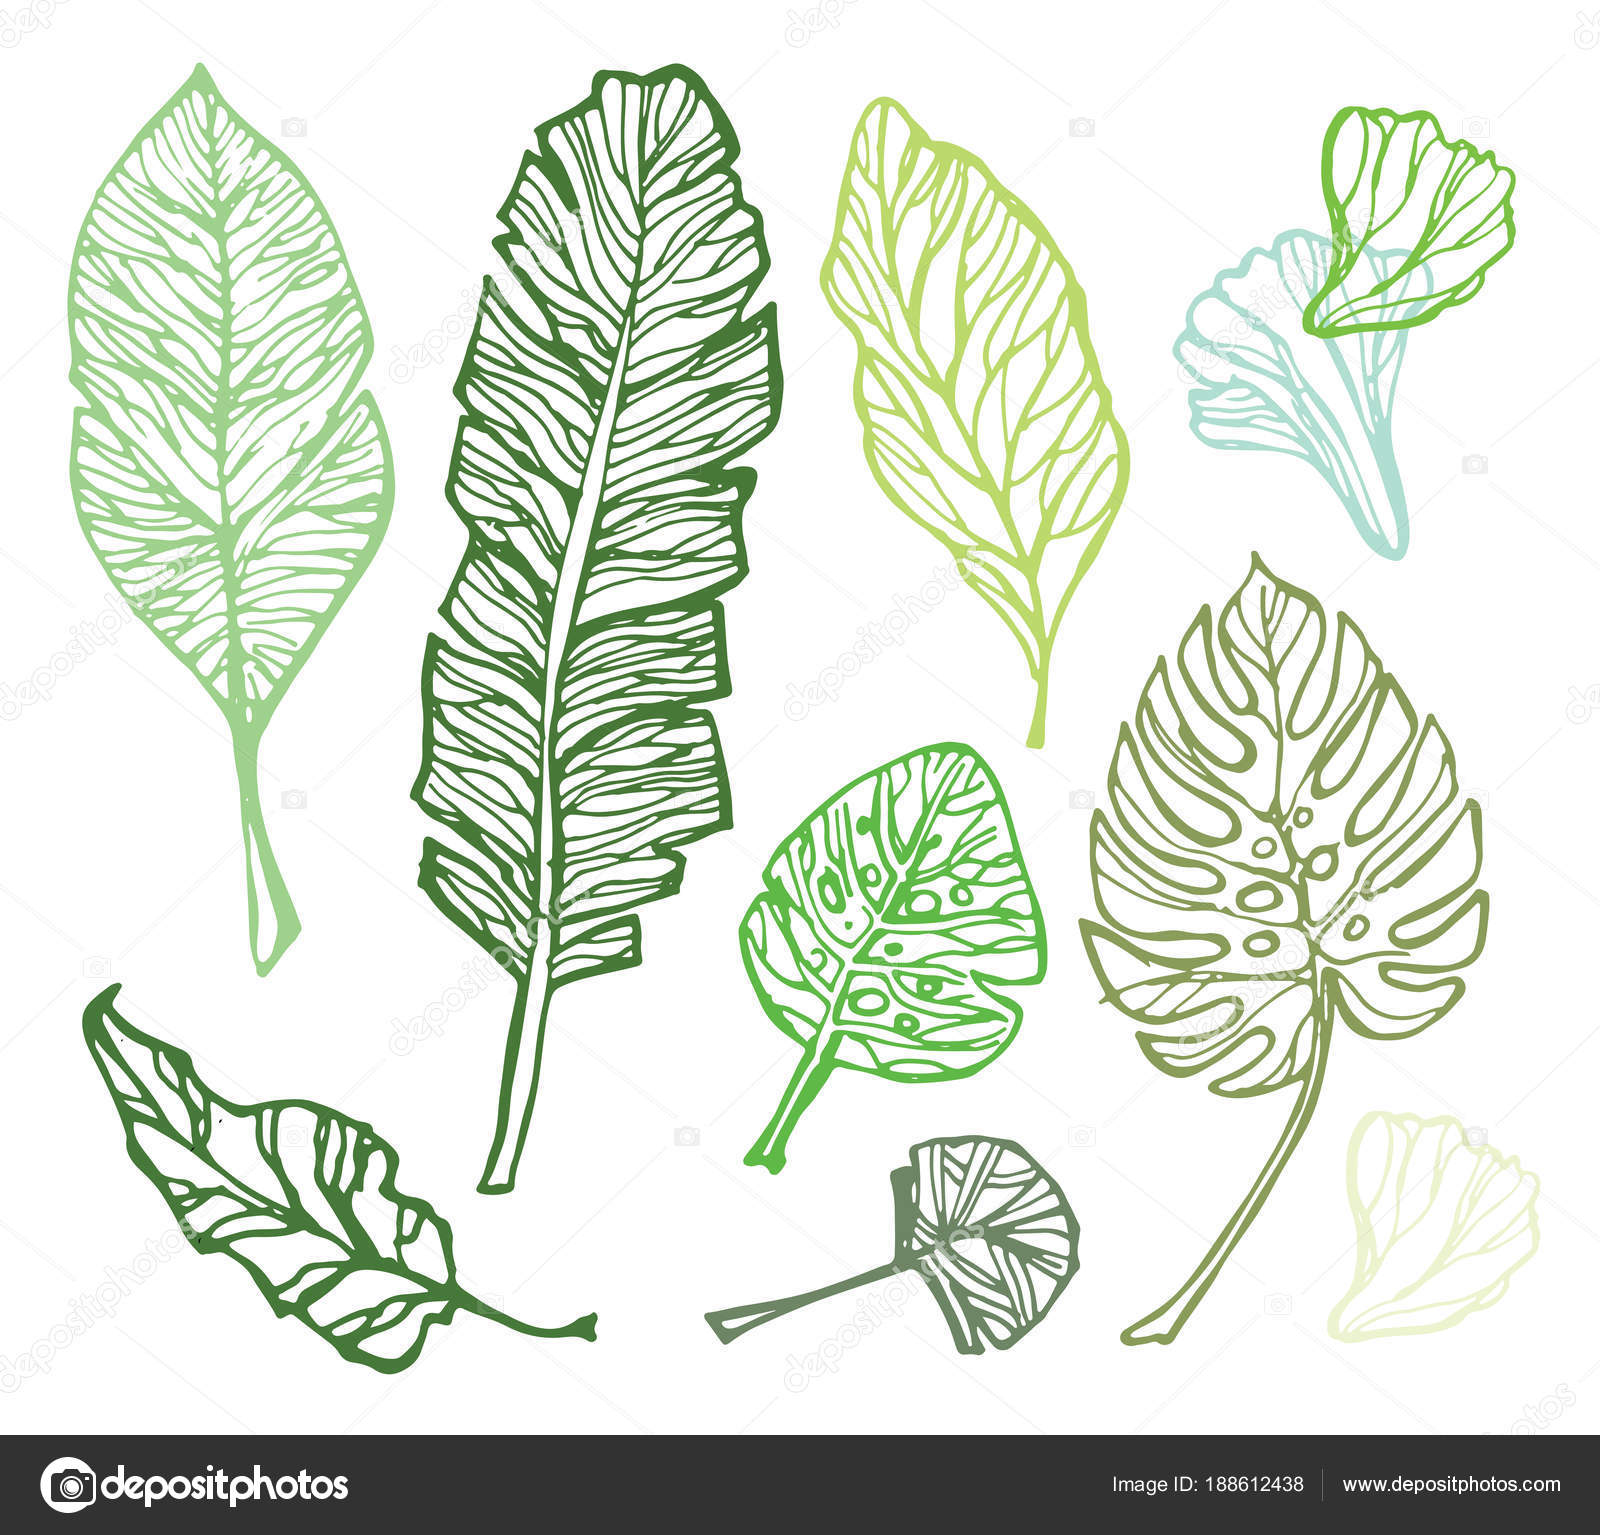 Hand Drawn Doodle Tropical Palm Leaves Stock Vector C Jane55 188612438 Find over 100+ of the best free tropical leaves images. https depositphotos com 188612438 stock illustration hand drawn doodle tropical palm html